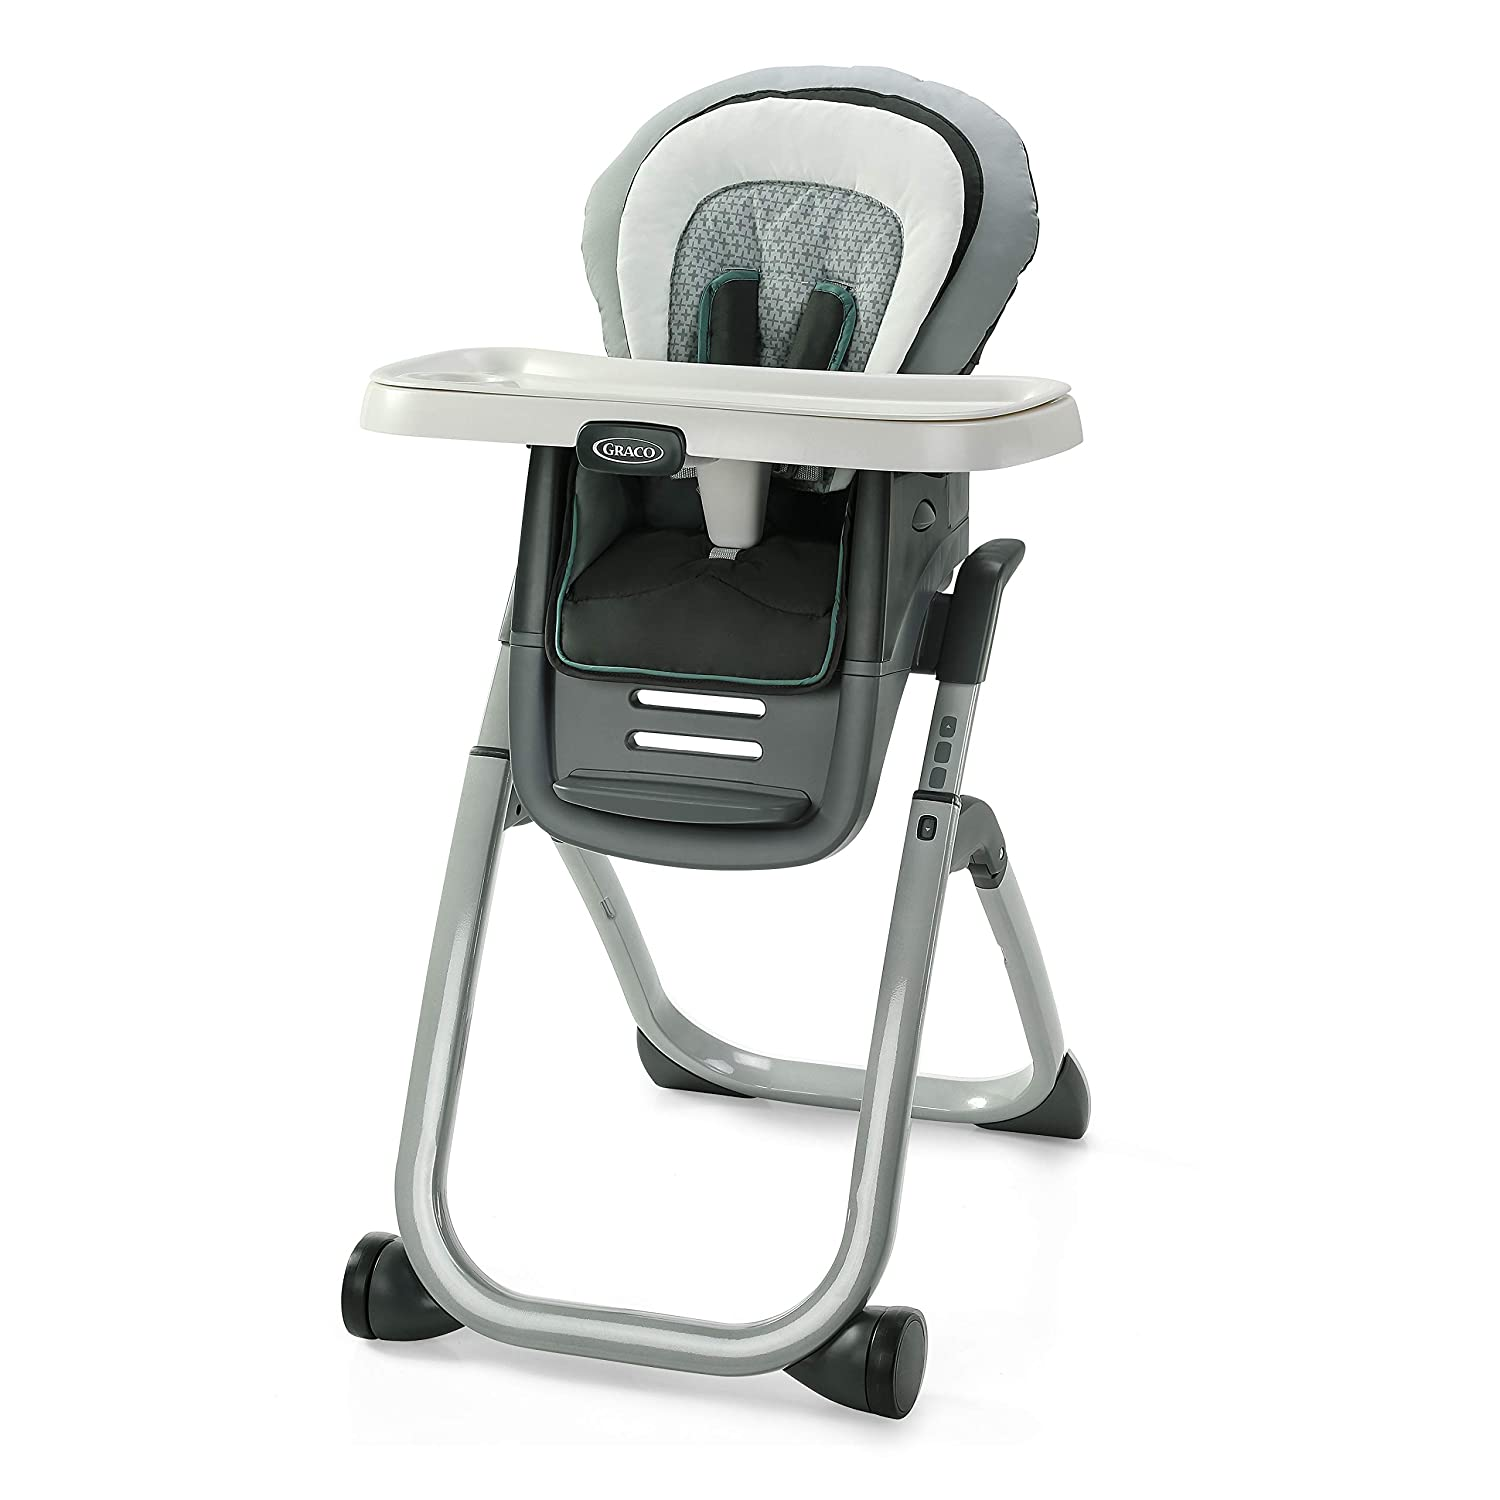 Graco DuoDiner DLX 6 in 1 High Chair | Converts to Dining Booster Seat, Youth Stool, and More, Mathis